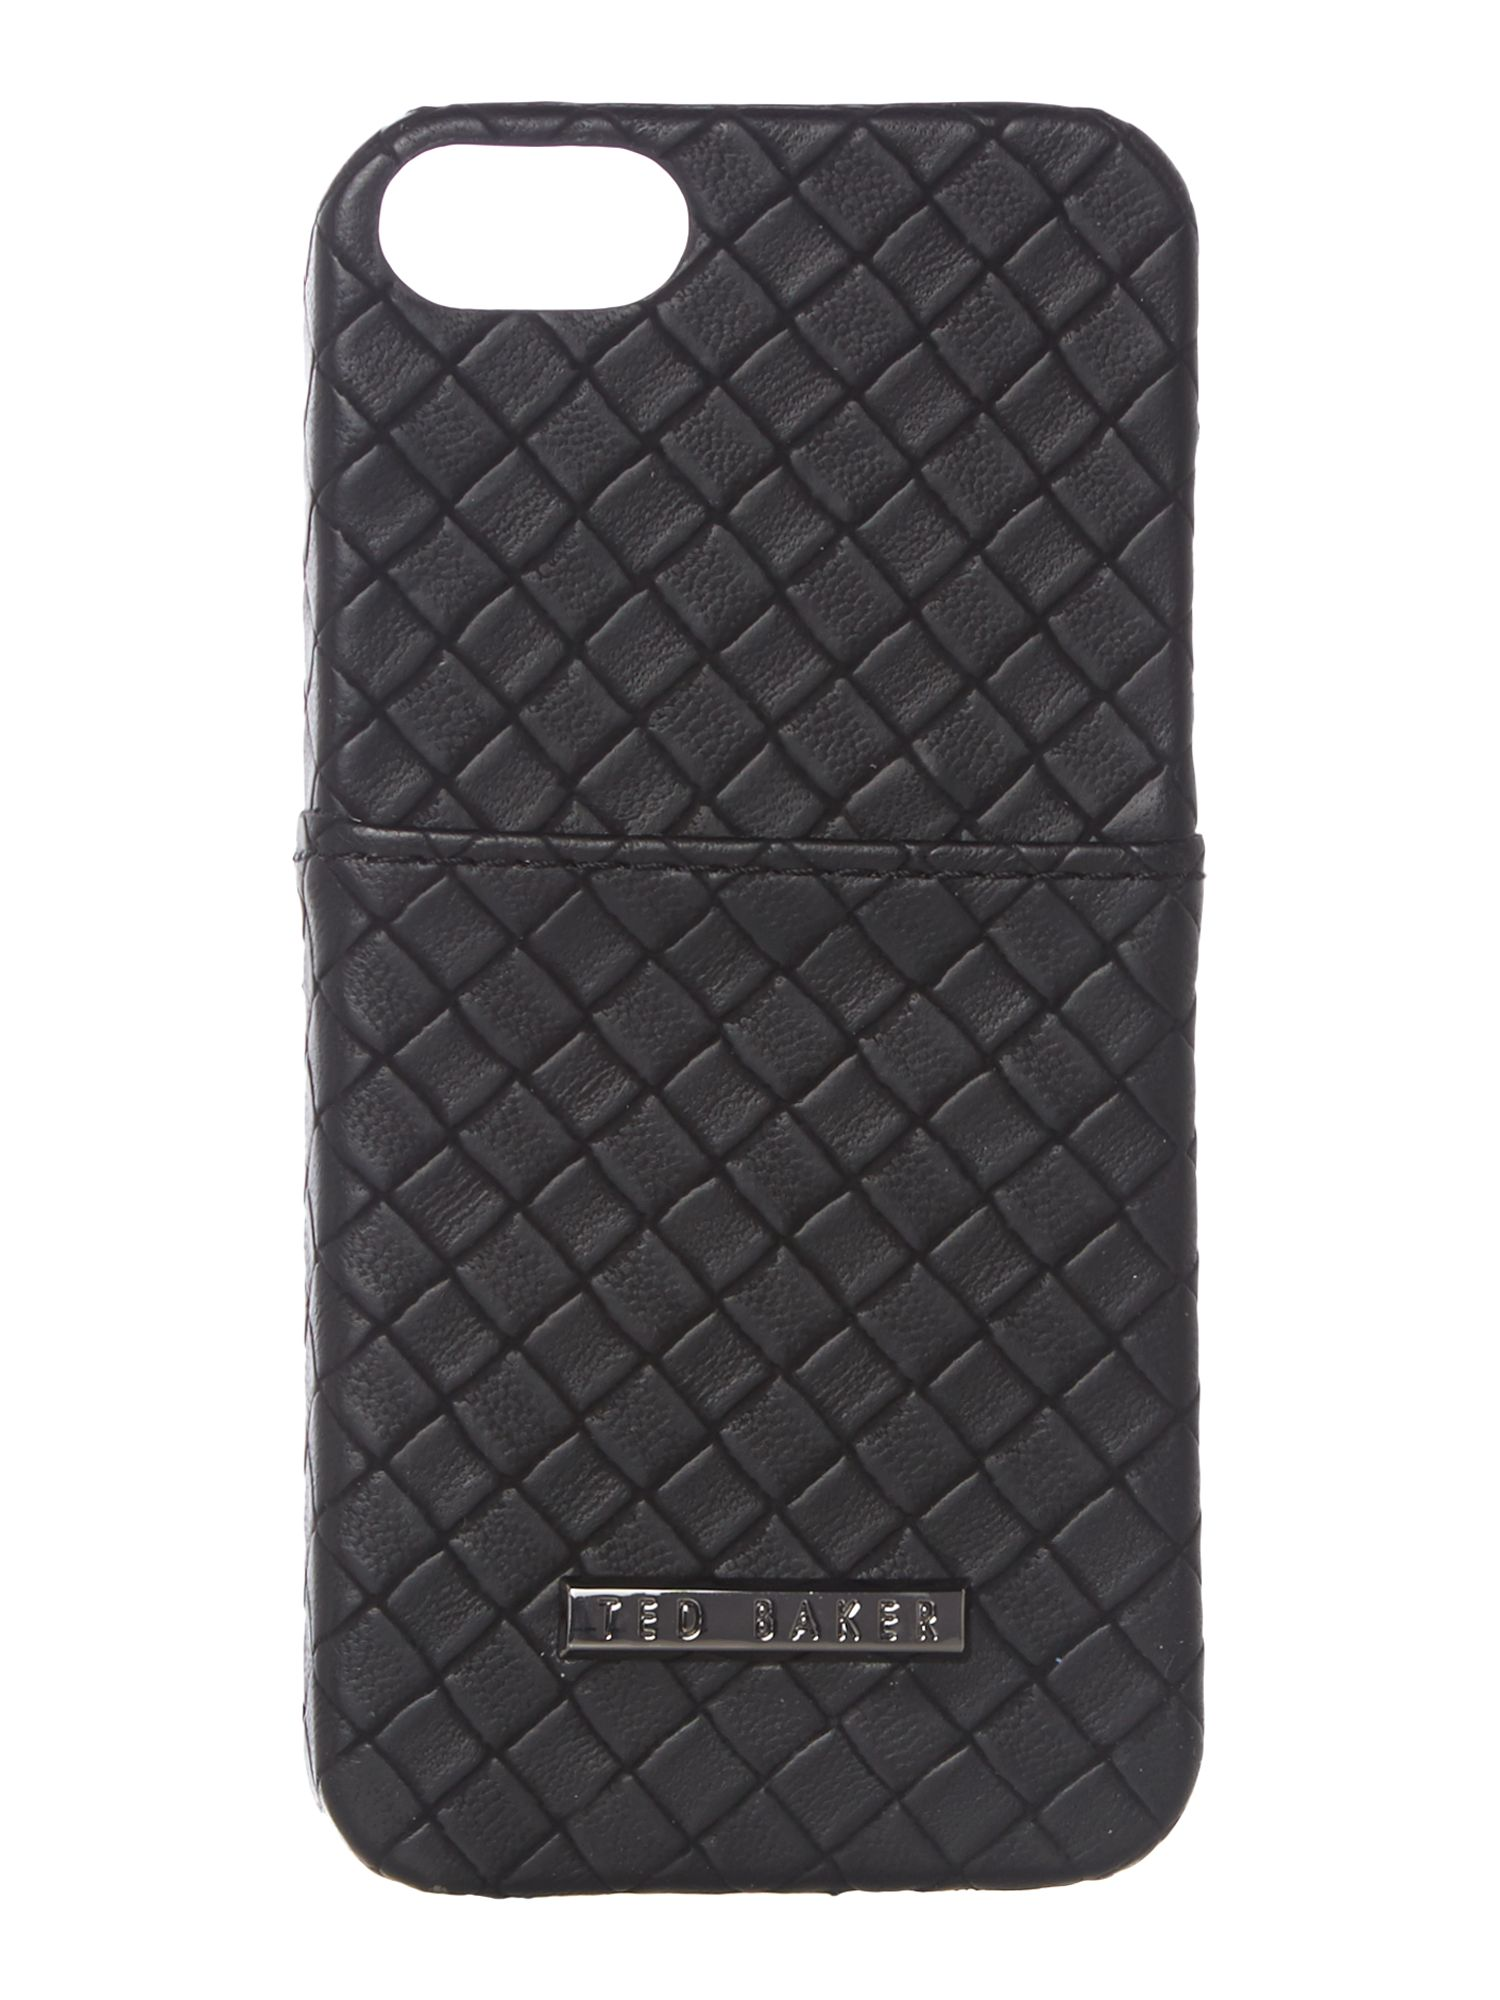 Woven phone case with card slot